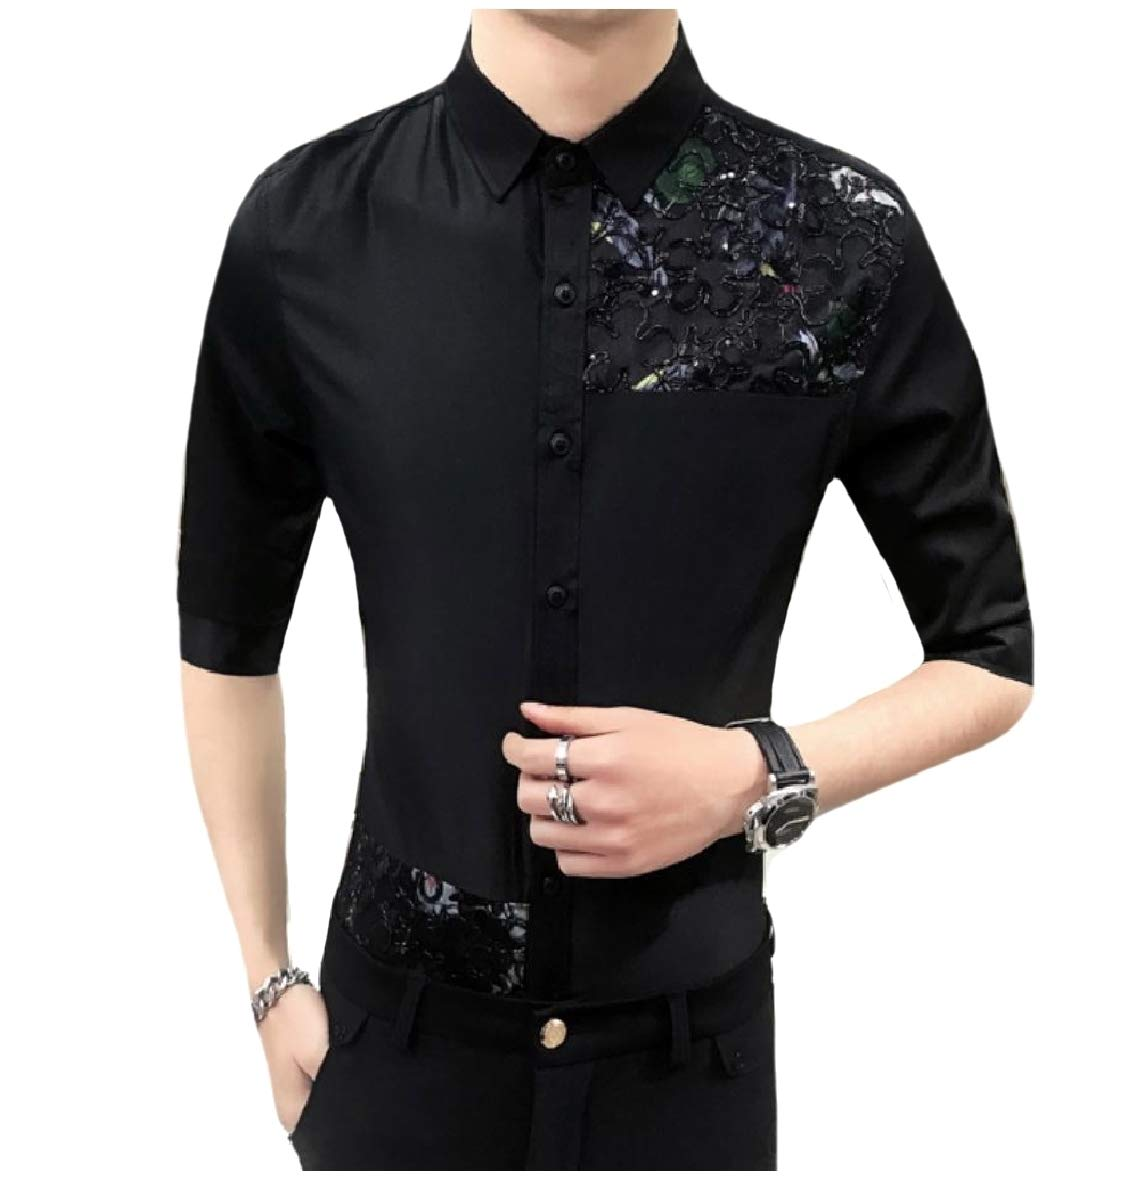 YUNY Mens Premium Button Down Solid Plus Size Fit Shirt AS14 M